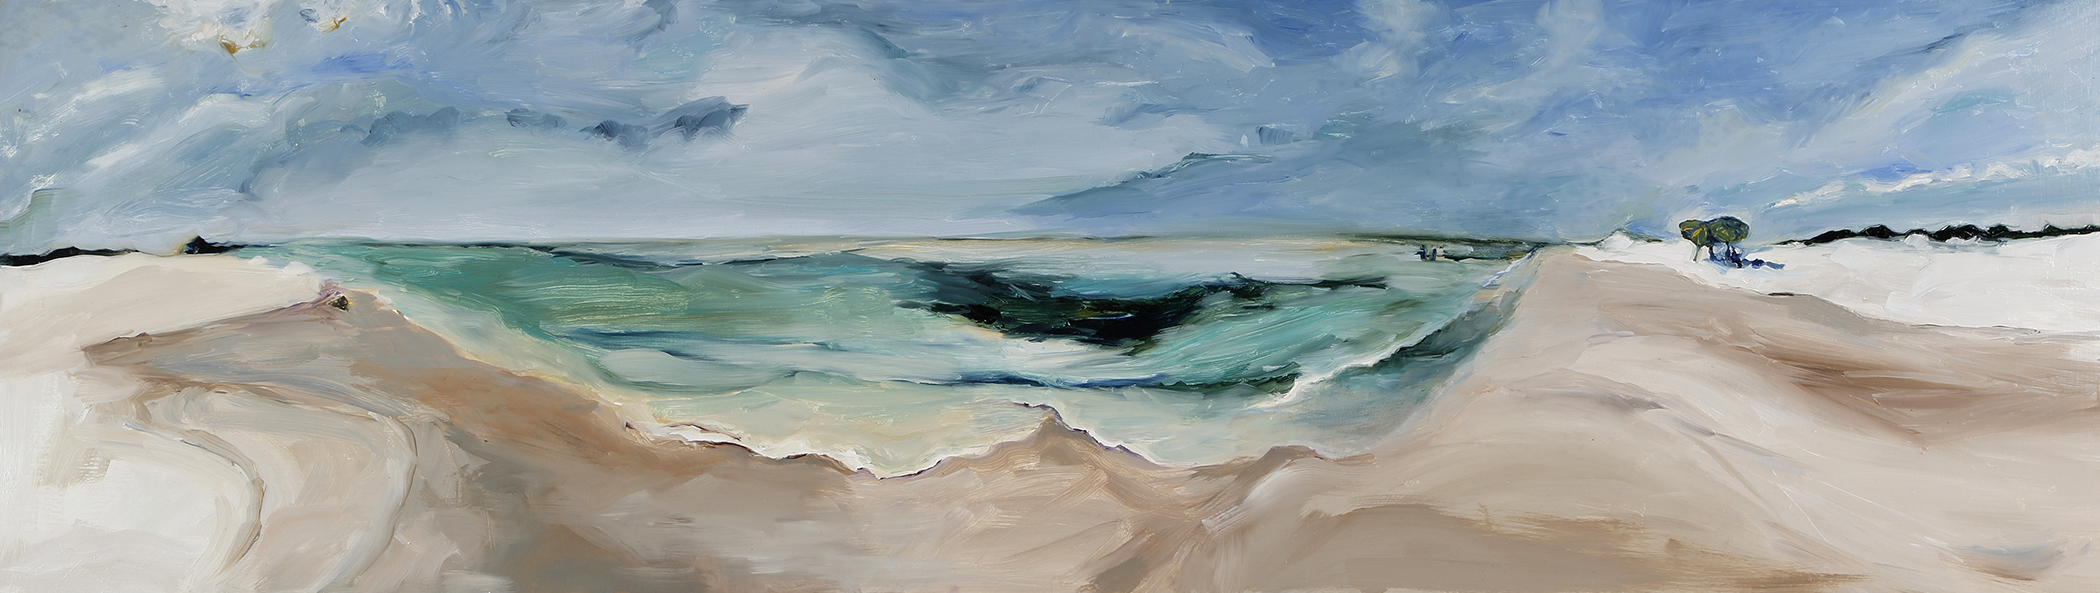 """""""Tide Pull"""" by Sharon Weis, Oil paint on birch plywood, 13x42in, 2019, $1200"""